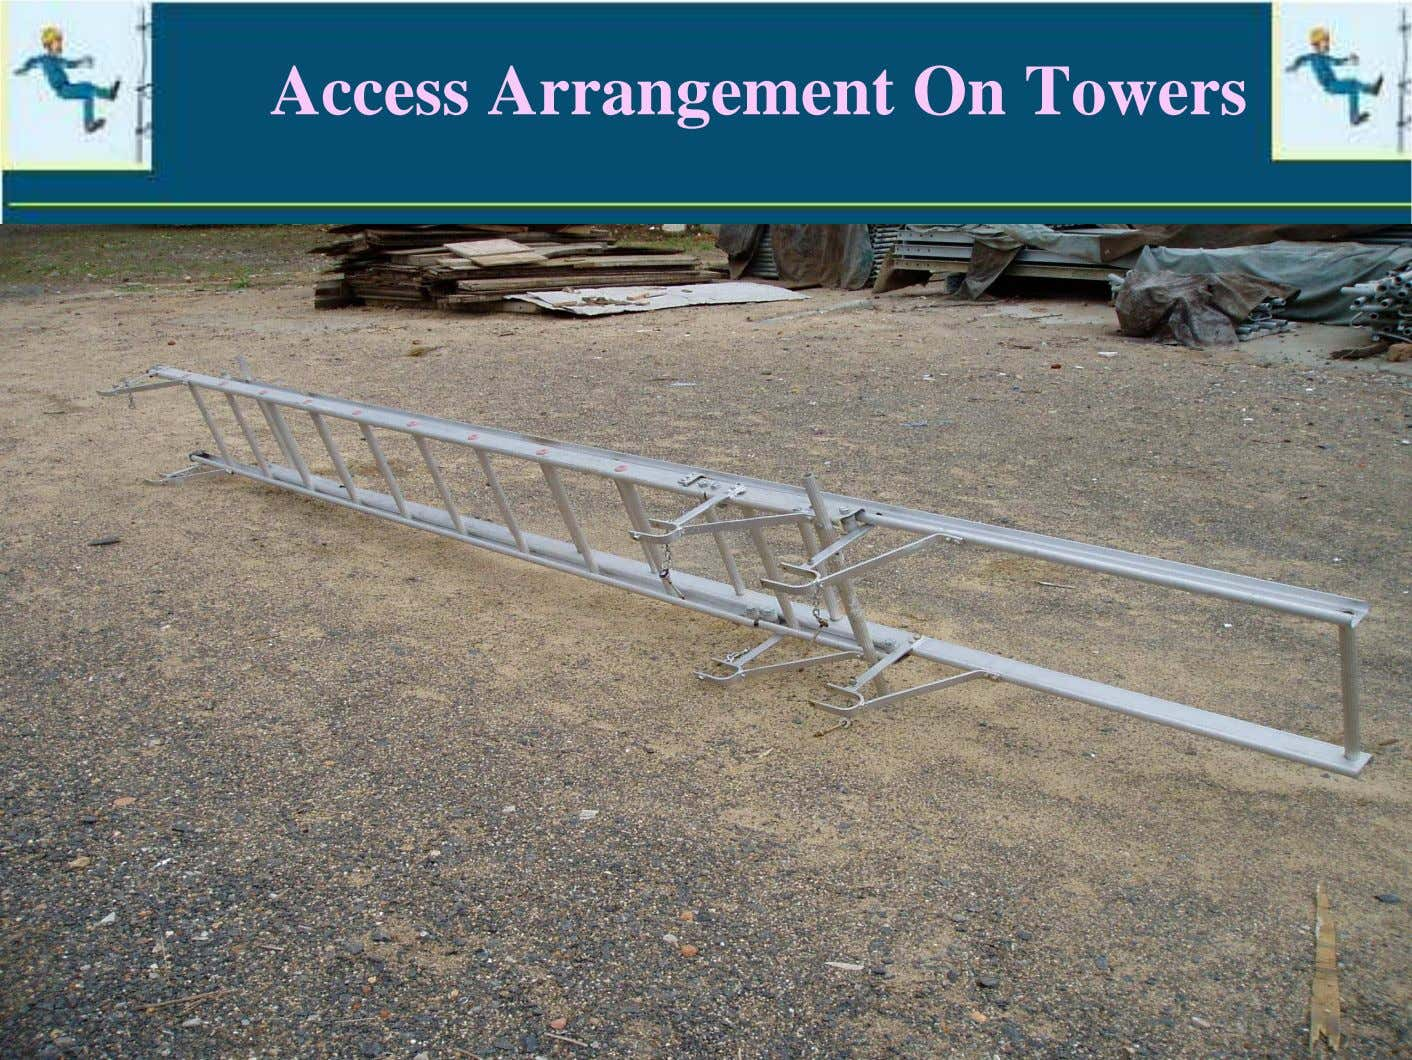 Access Arrangement On Towers